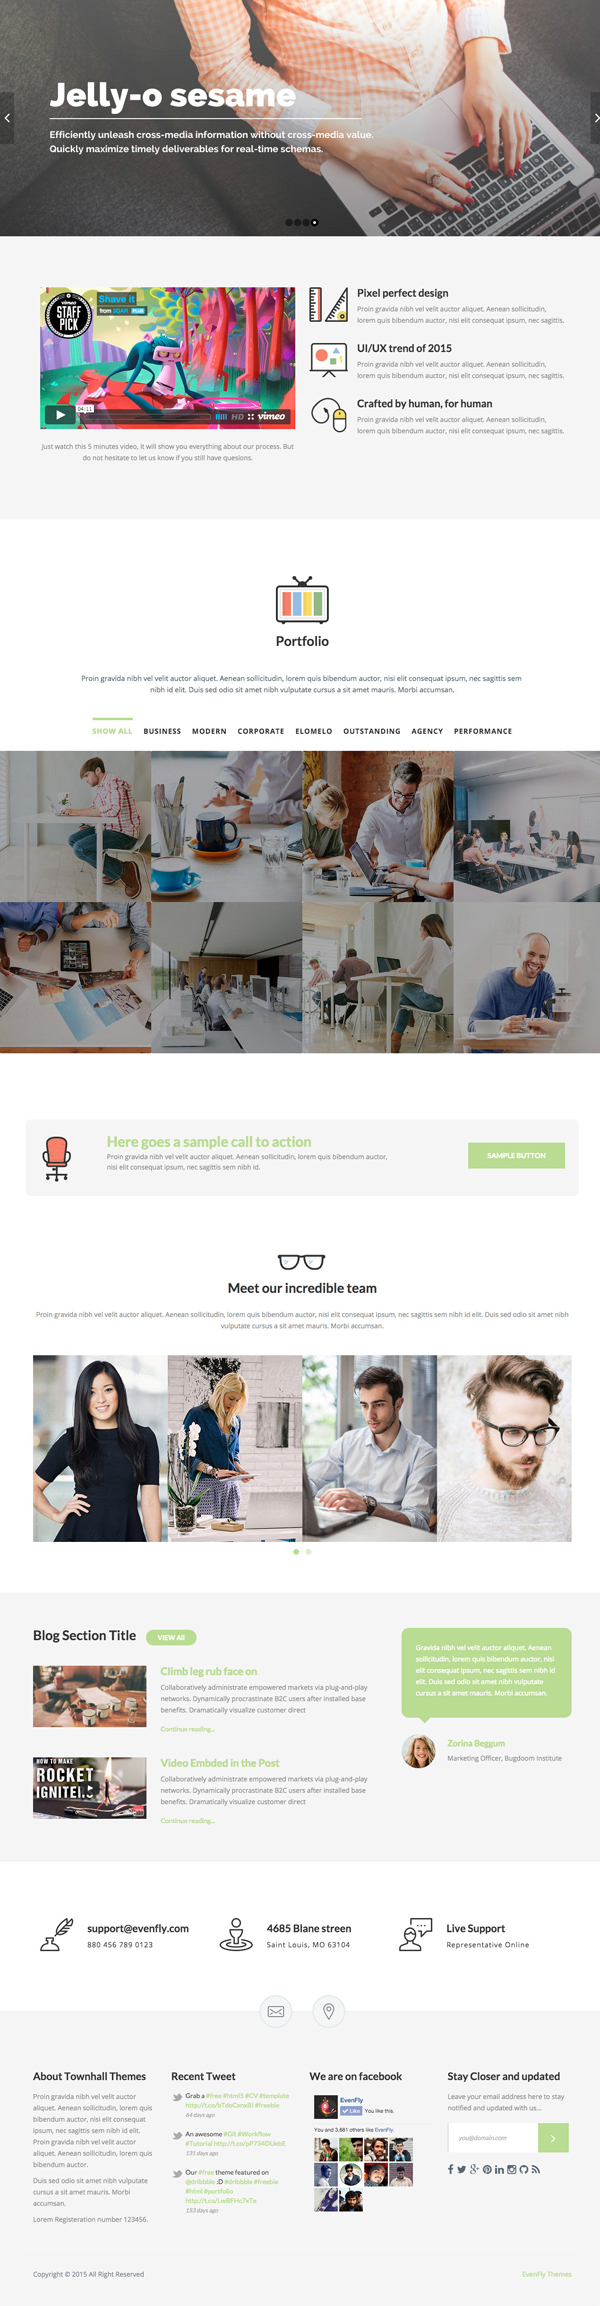 Townhall - Modern Theme for Startups and Agencies